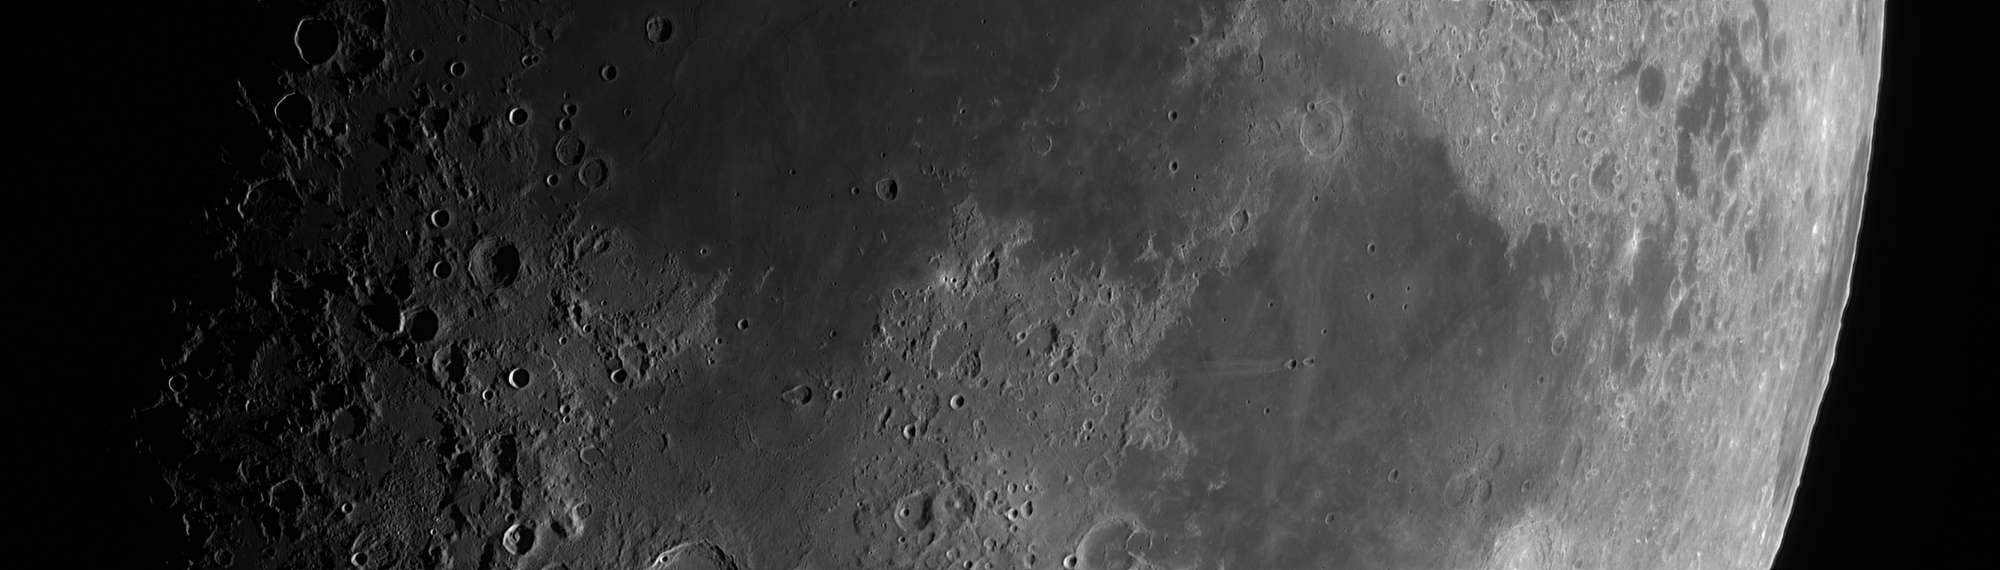 5de89824ec800_Moon_173806_031219_ZWOASI290MM_IR_720nm_AS_P25_lapl6_ap688_stitch.thumb.jpg.27ef70b13d8d64220b498720ce8106fa.jpg